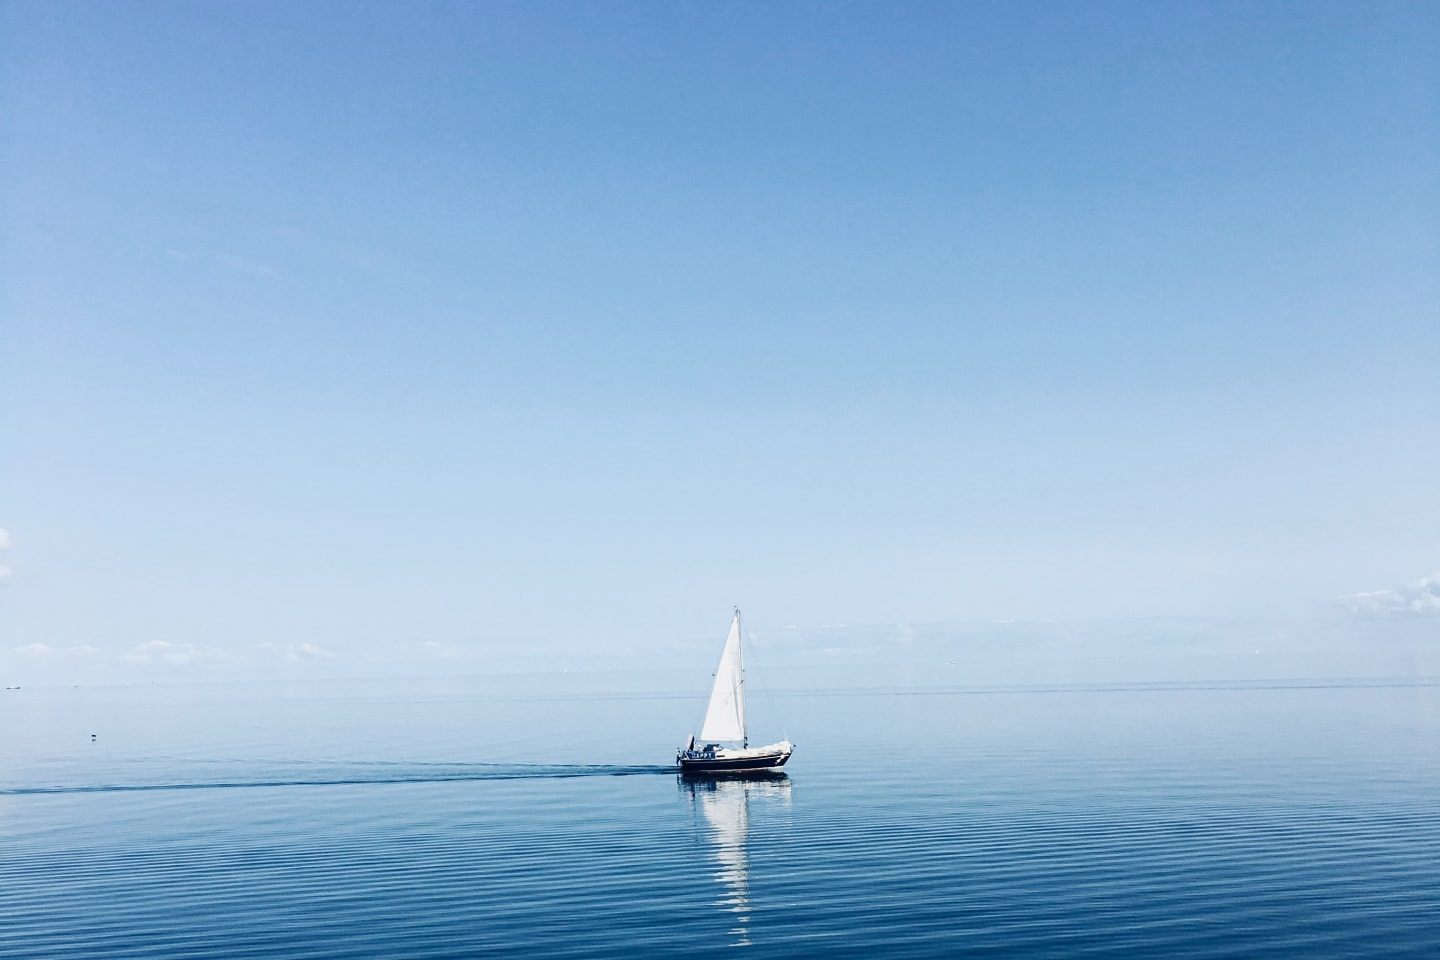 A boat sailing across the ocean